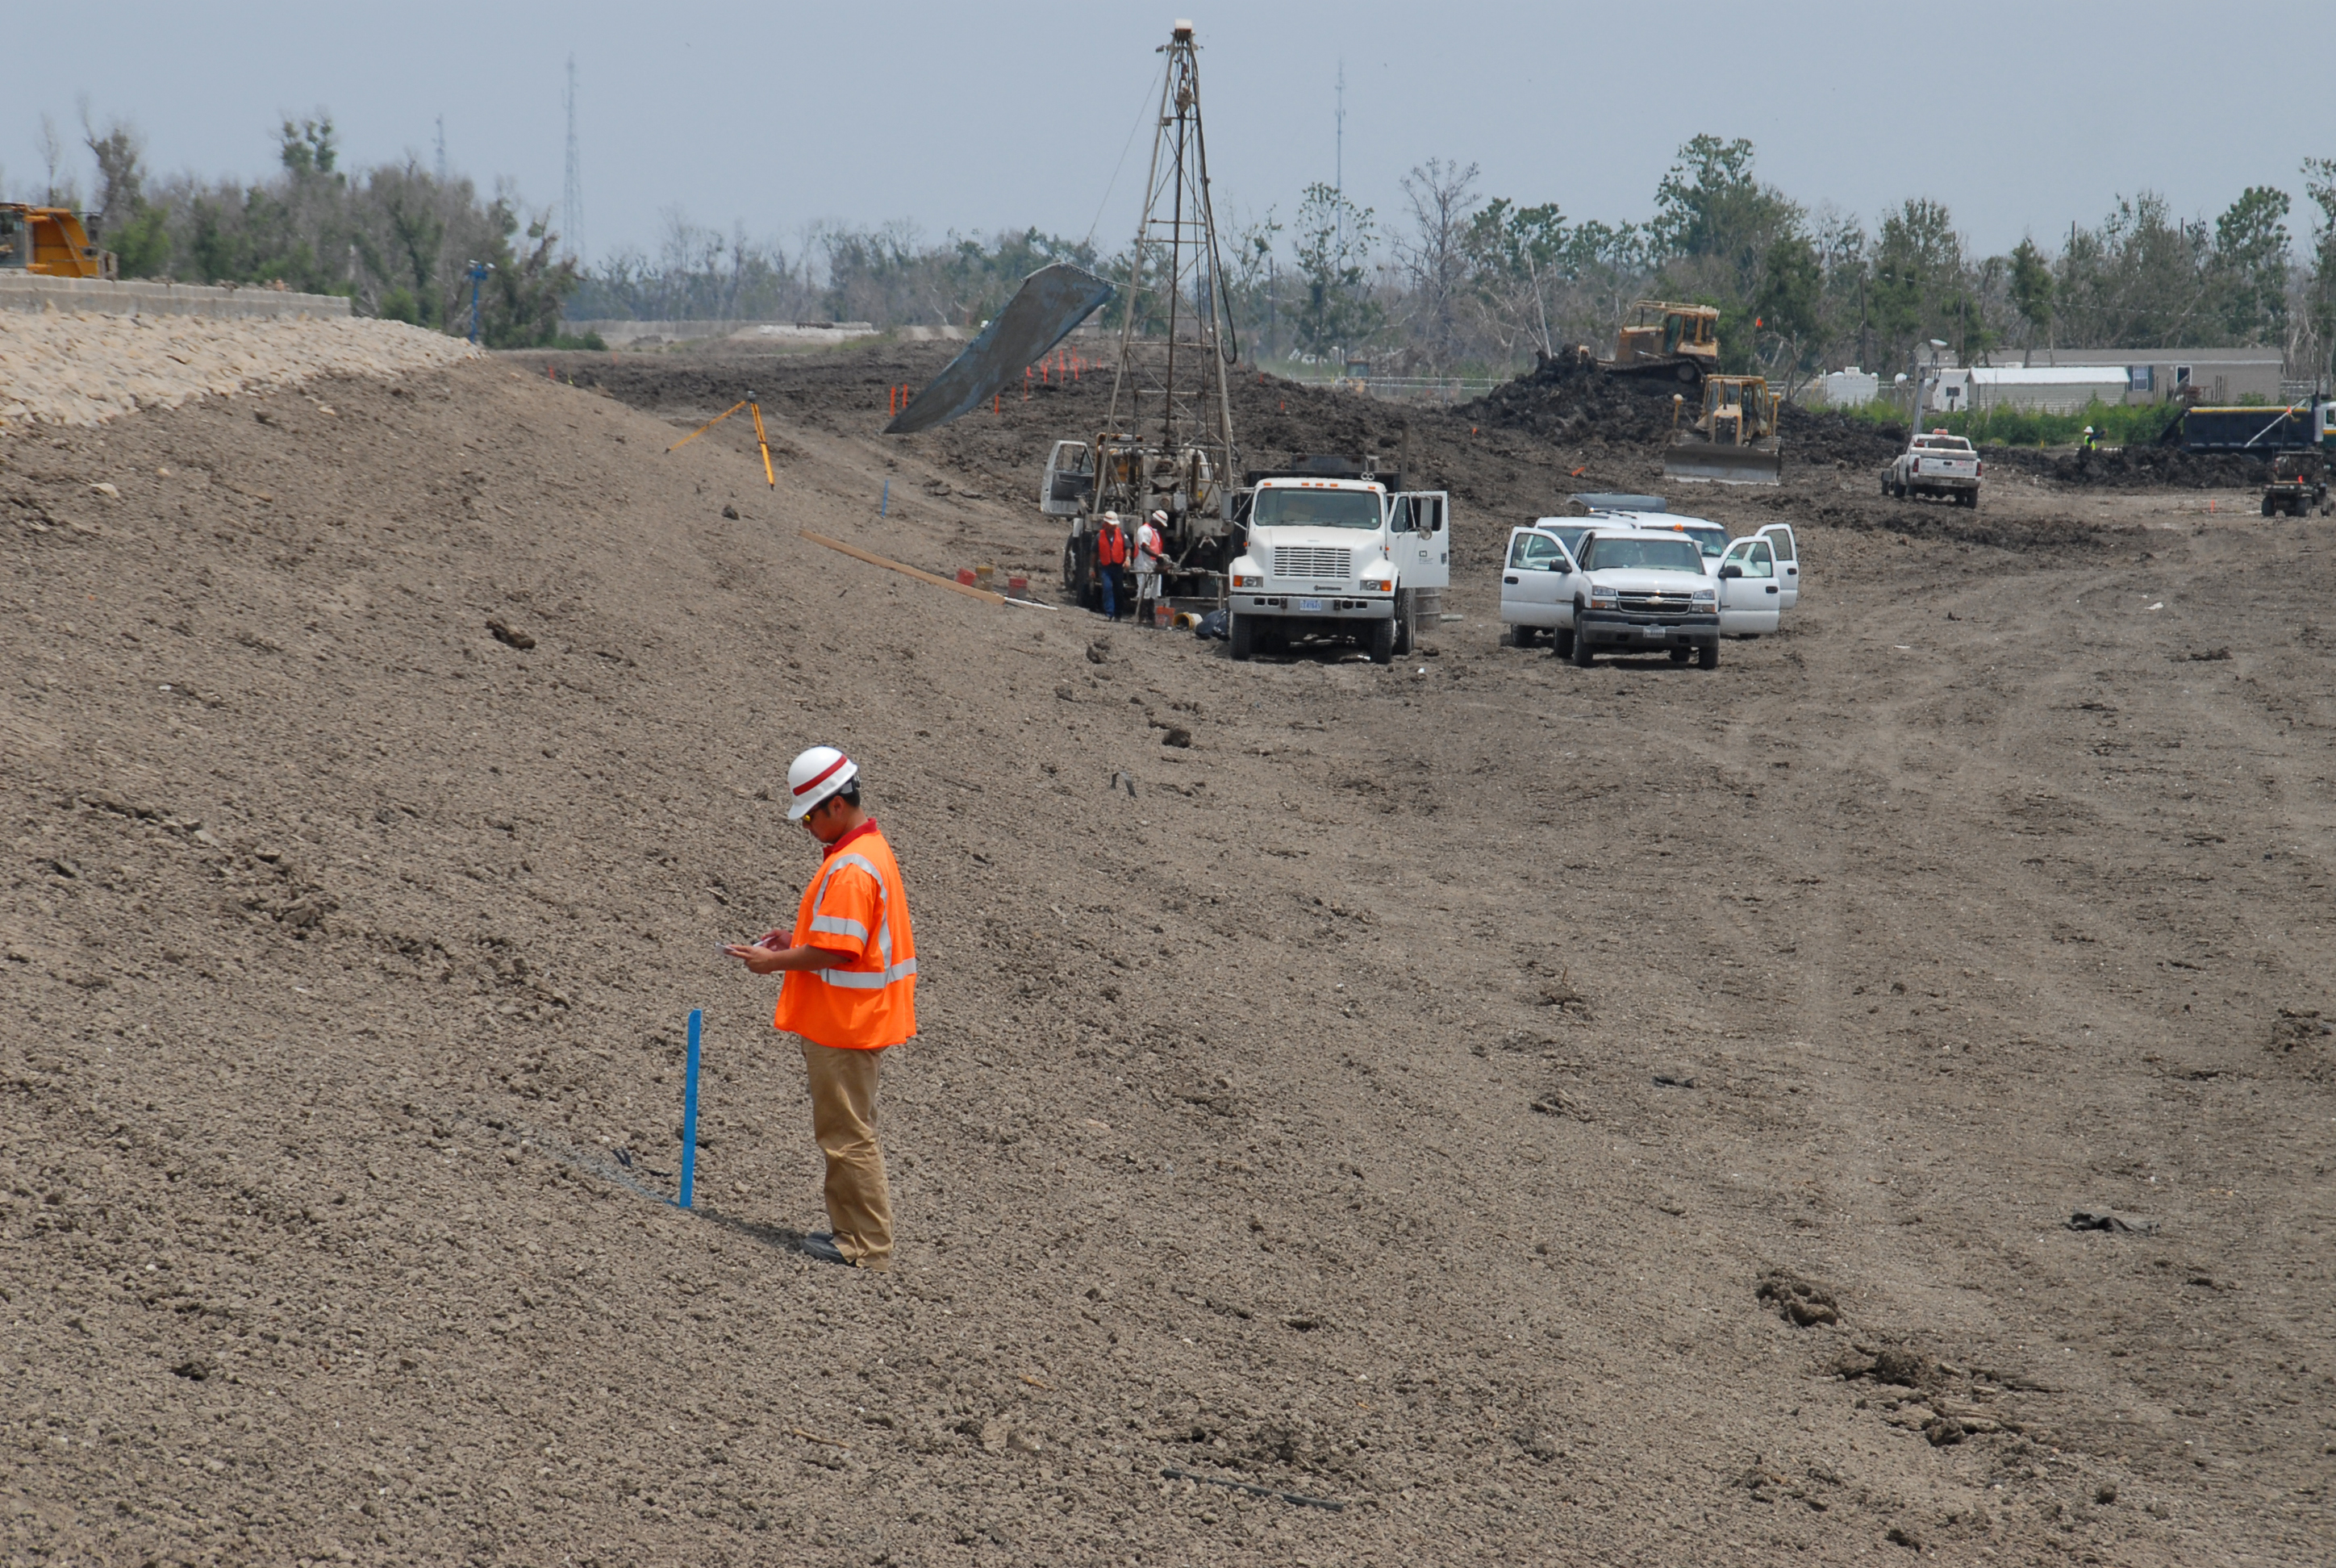 soil stabilization is vital in keeping the environment functioning